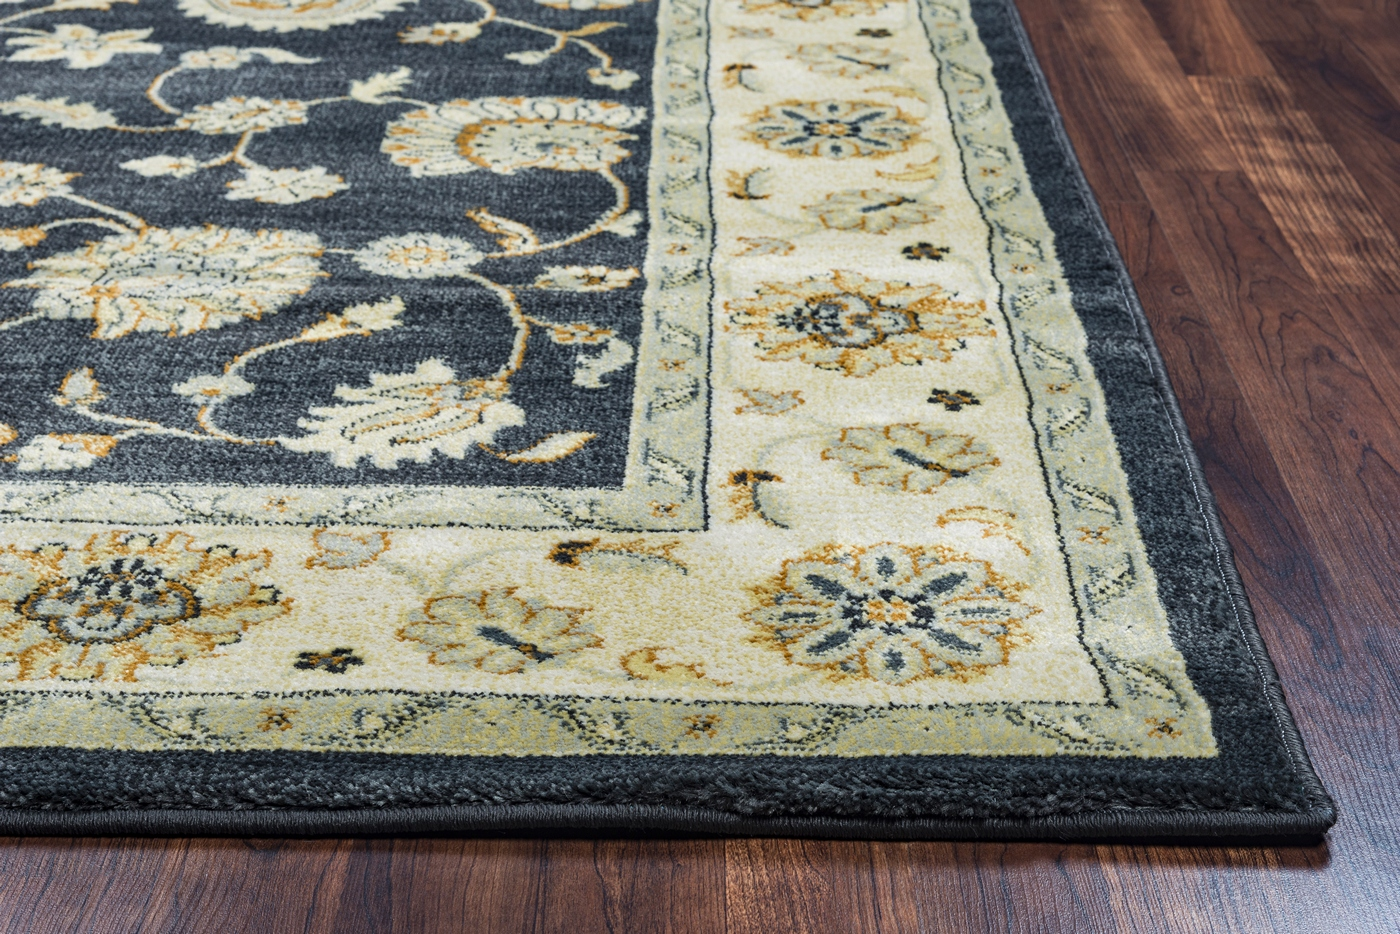 Grey Tan And Brown Area Rug: Sorrento Botanical Bordered Area Rug In Grey Tan Sage Blue